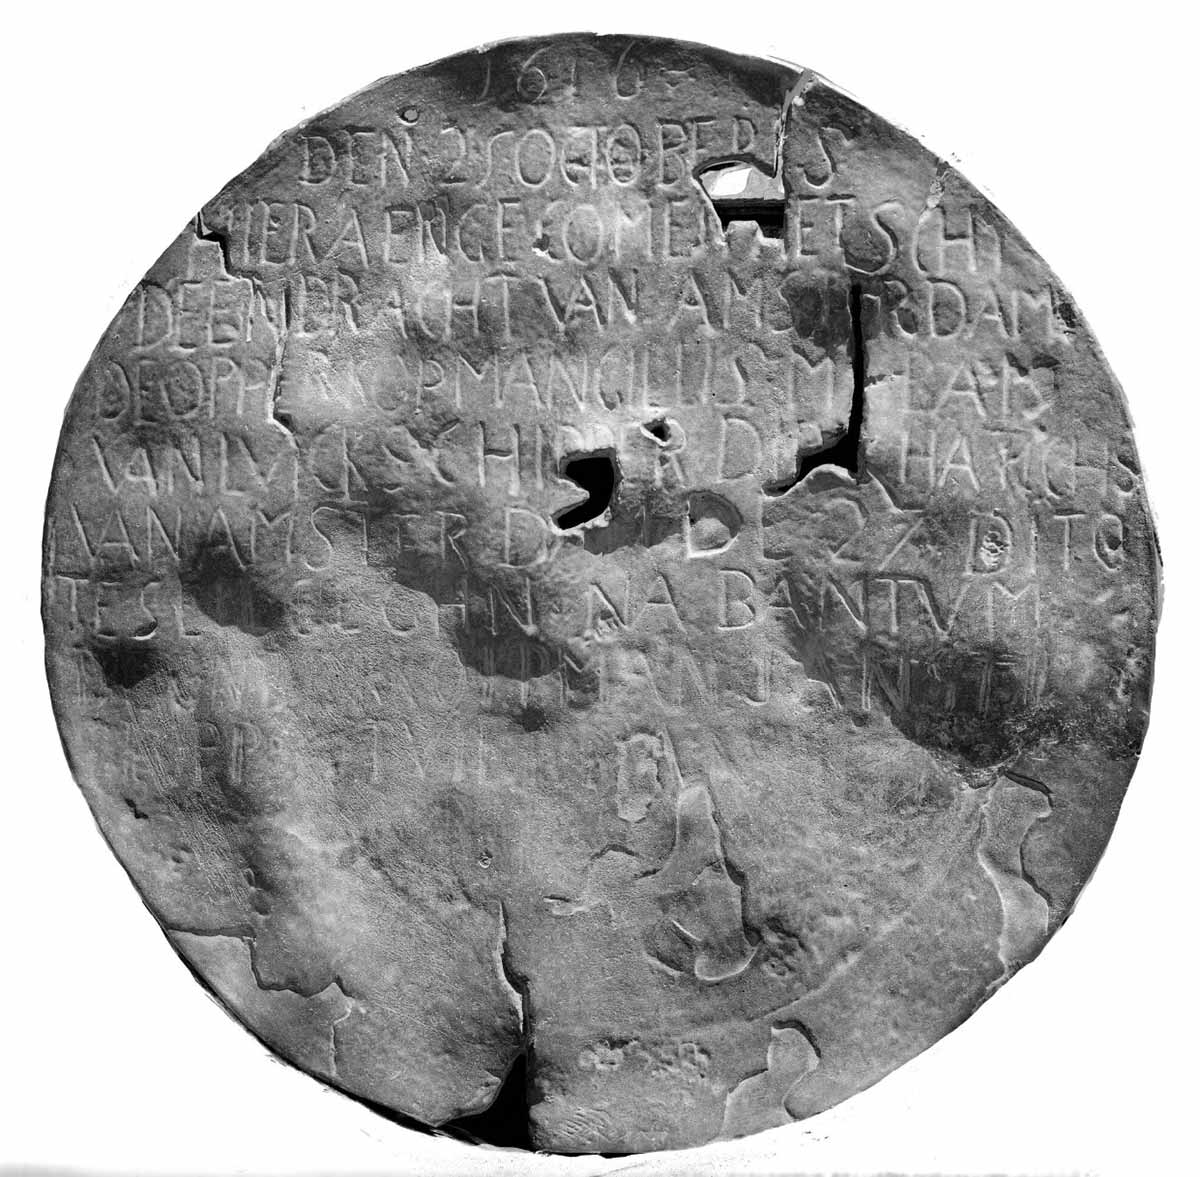 A battered disc, much worn and with holes in it. Words are visible, neatly inscribed in capitals in the top two thirds of the plate. - click to view larger image